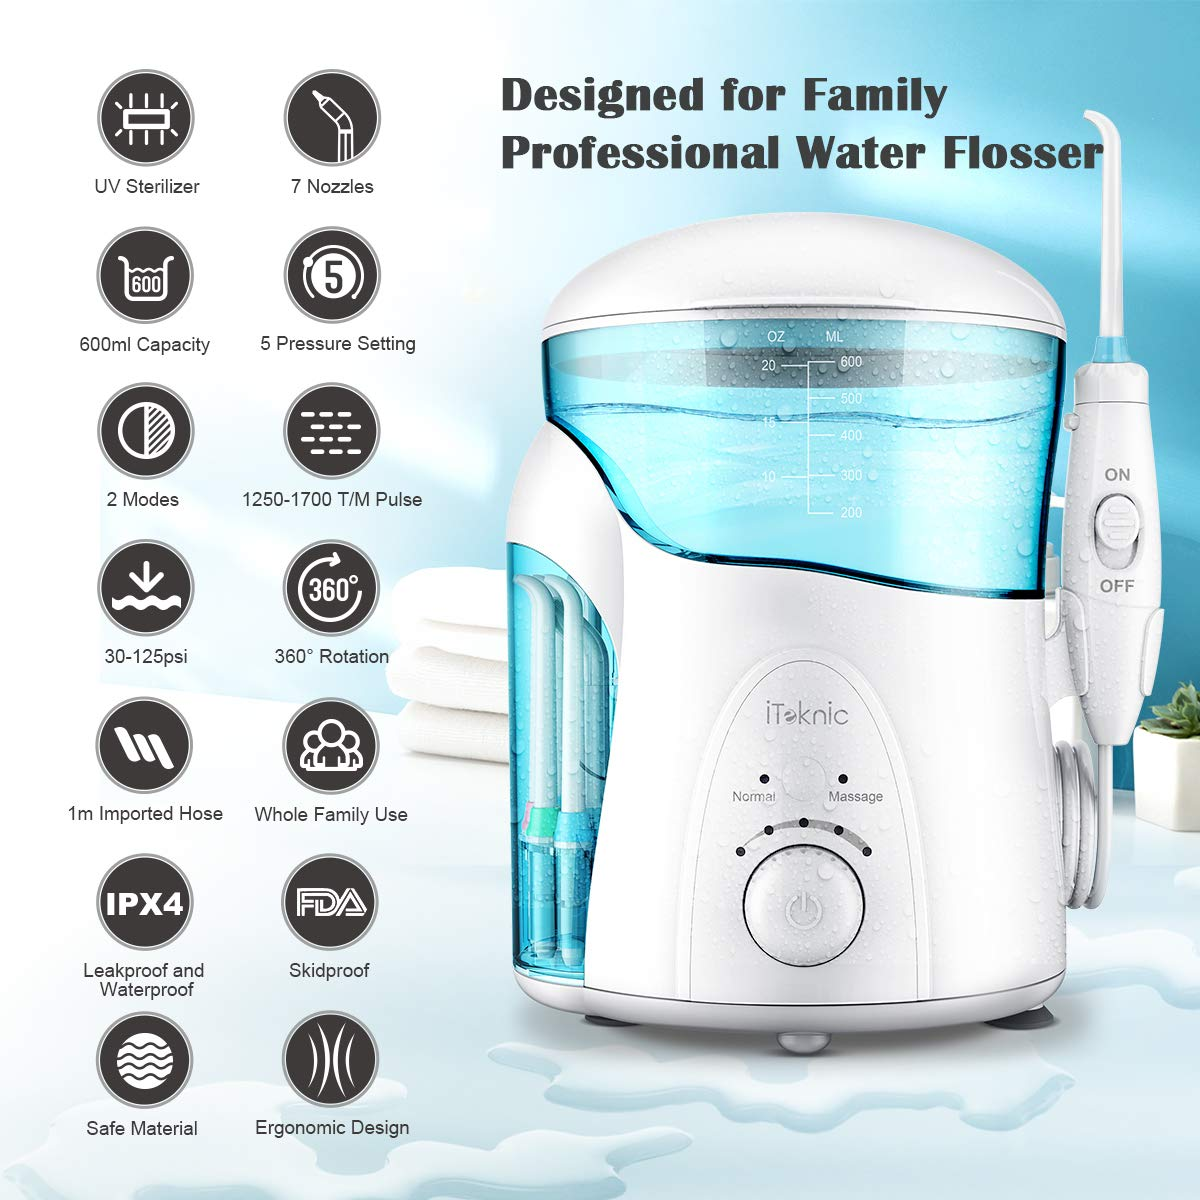 iTeknic Water Flosser UV Sterilizer Family Electric Dental Oral Water Irrigator for Teeth Clean with 2 Modes, 7 Jet Tips, 600ml Water Tank, 5 Adjustable Pressure